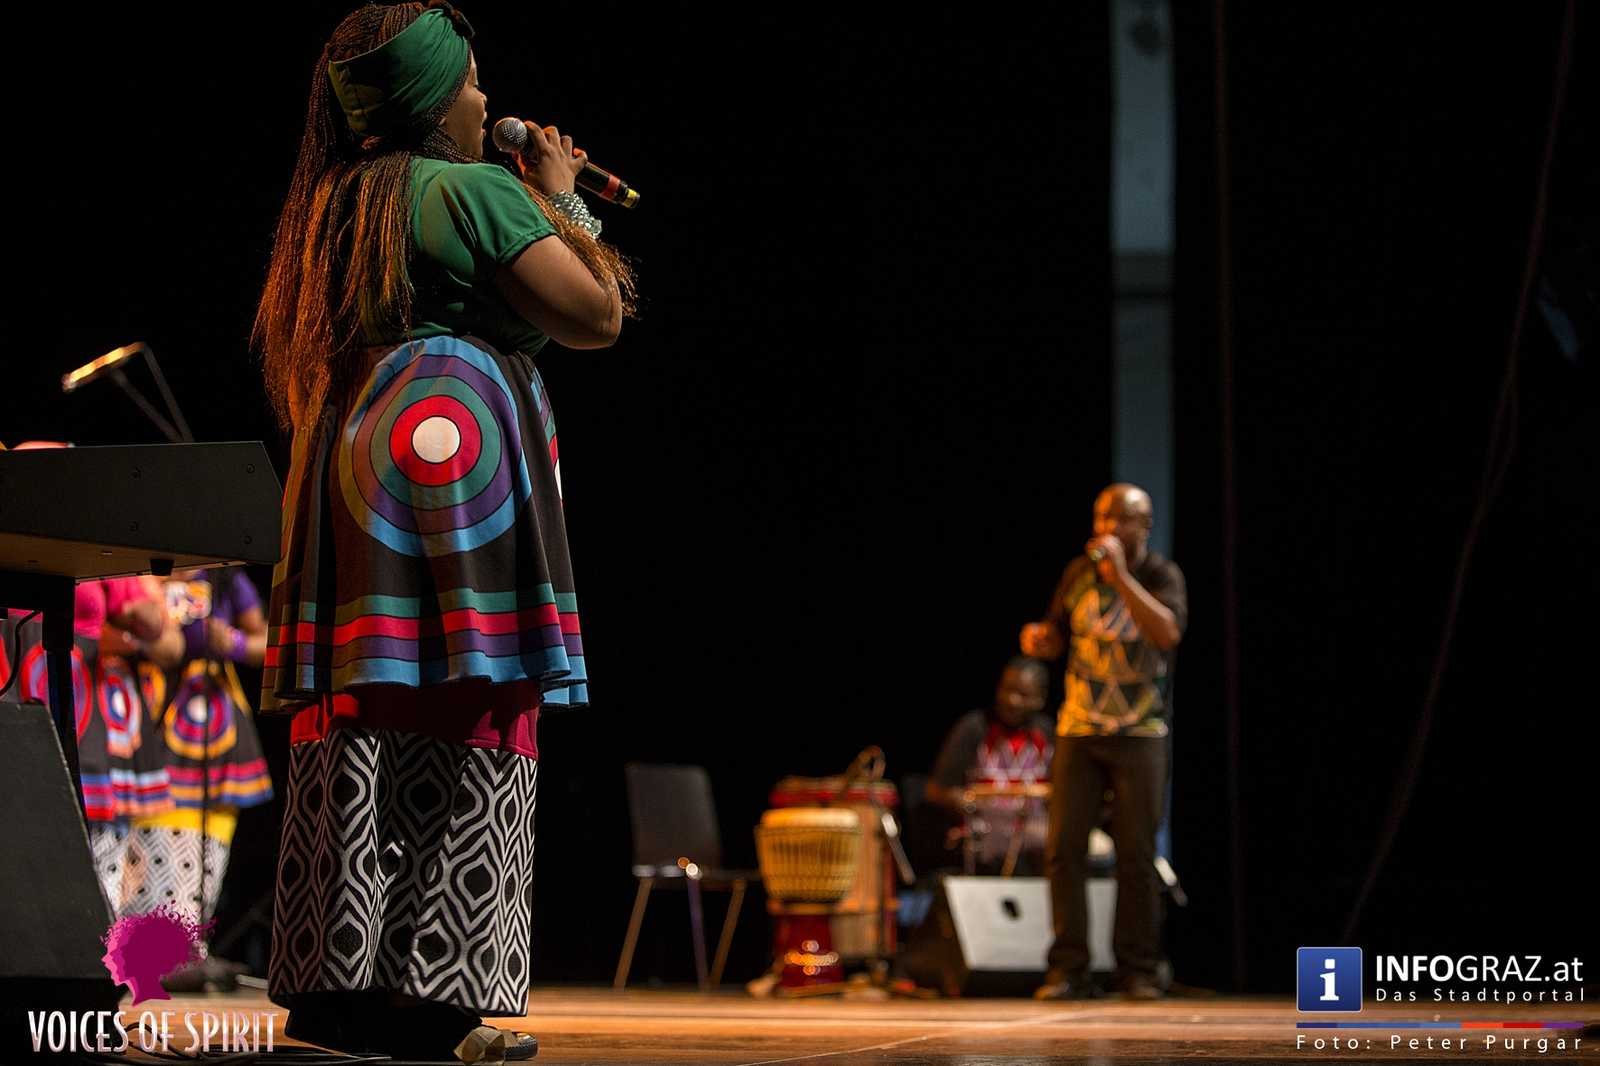 soweto gospel choir internationales chorfestival statdthalle graz voices of spirit eroeffnung festivals 2016 024